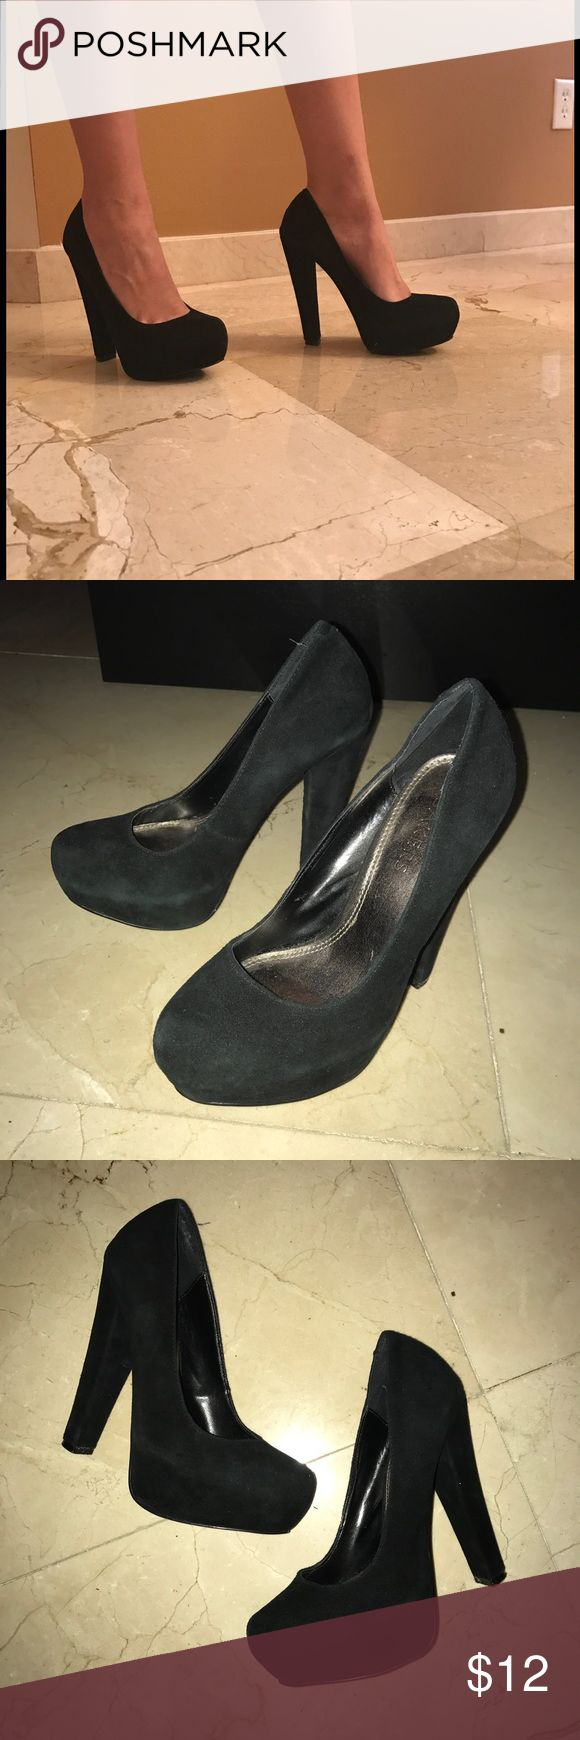 Black suede pumps with chunky heel Worn a handful of times but still in good condition 7/10. Some signs of wear.  NOT Steve Madden, bought at Bakers Steve Madden Shoes